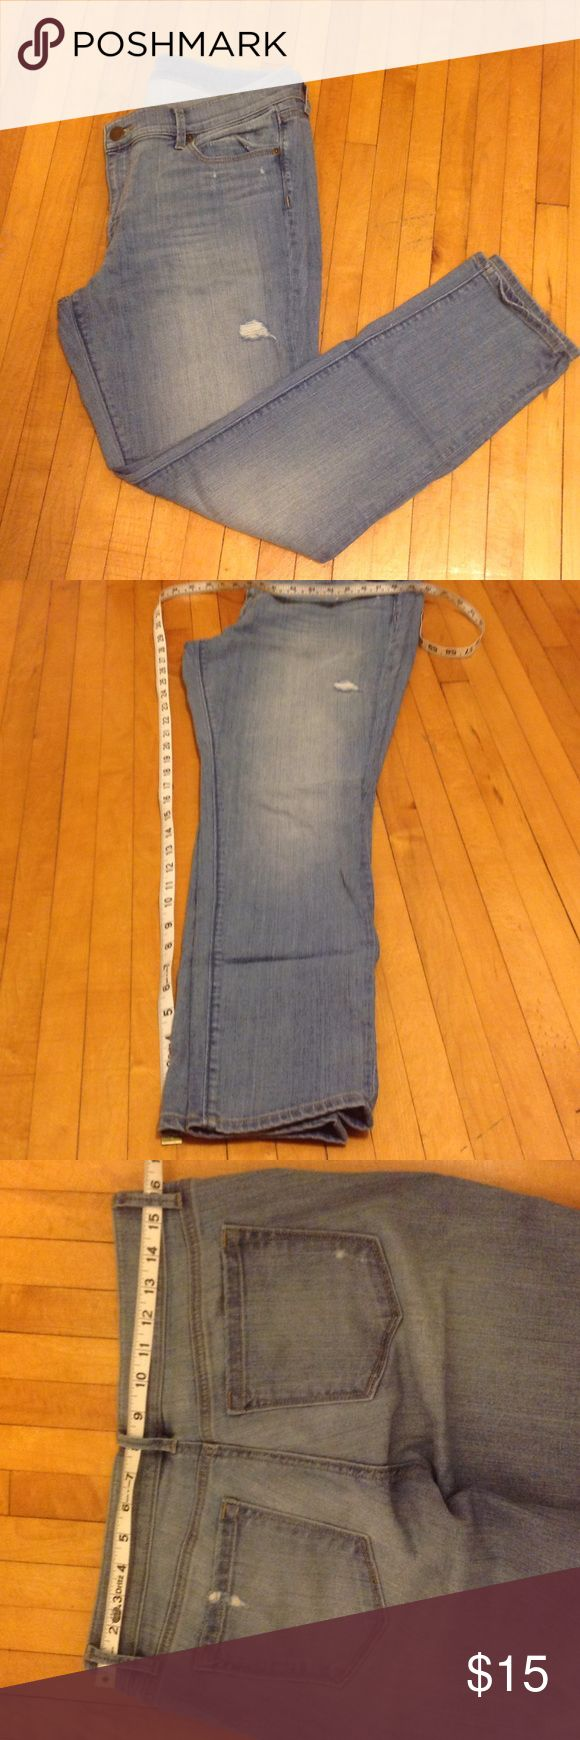 Skinny Jeans, NWOT, Loft, 12 Petite Loft, 12 petite skinny jeans, would look great tucked in some boots this winter, or rolled up in the spring with flats. NWOT, great distressed look but not overly done. LOFT Jeans Skinny